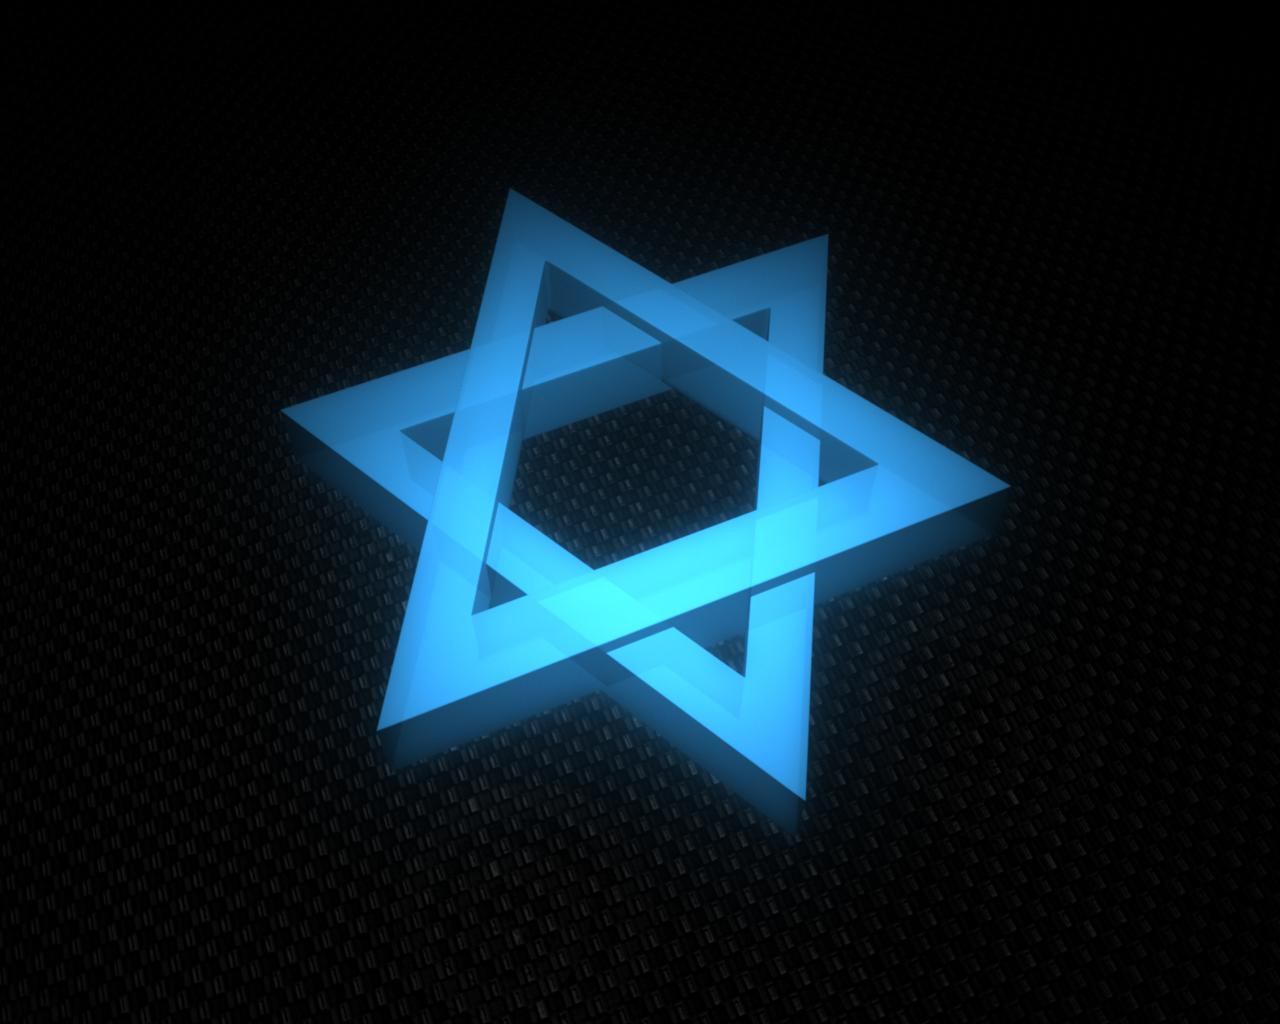 Jewish Star By Crye Graphics   1280x1024 iWallHD   Wallpaper HD 1280x1024